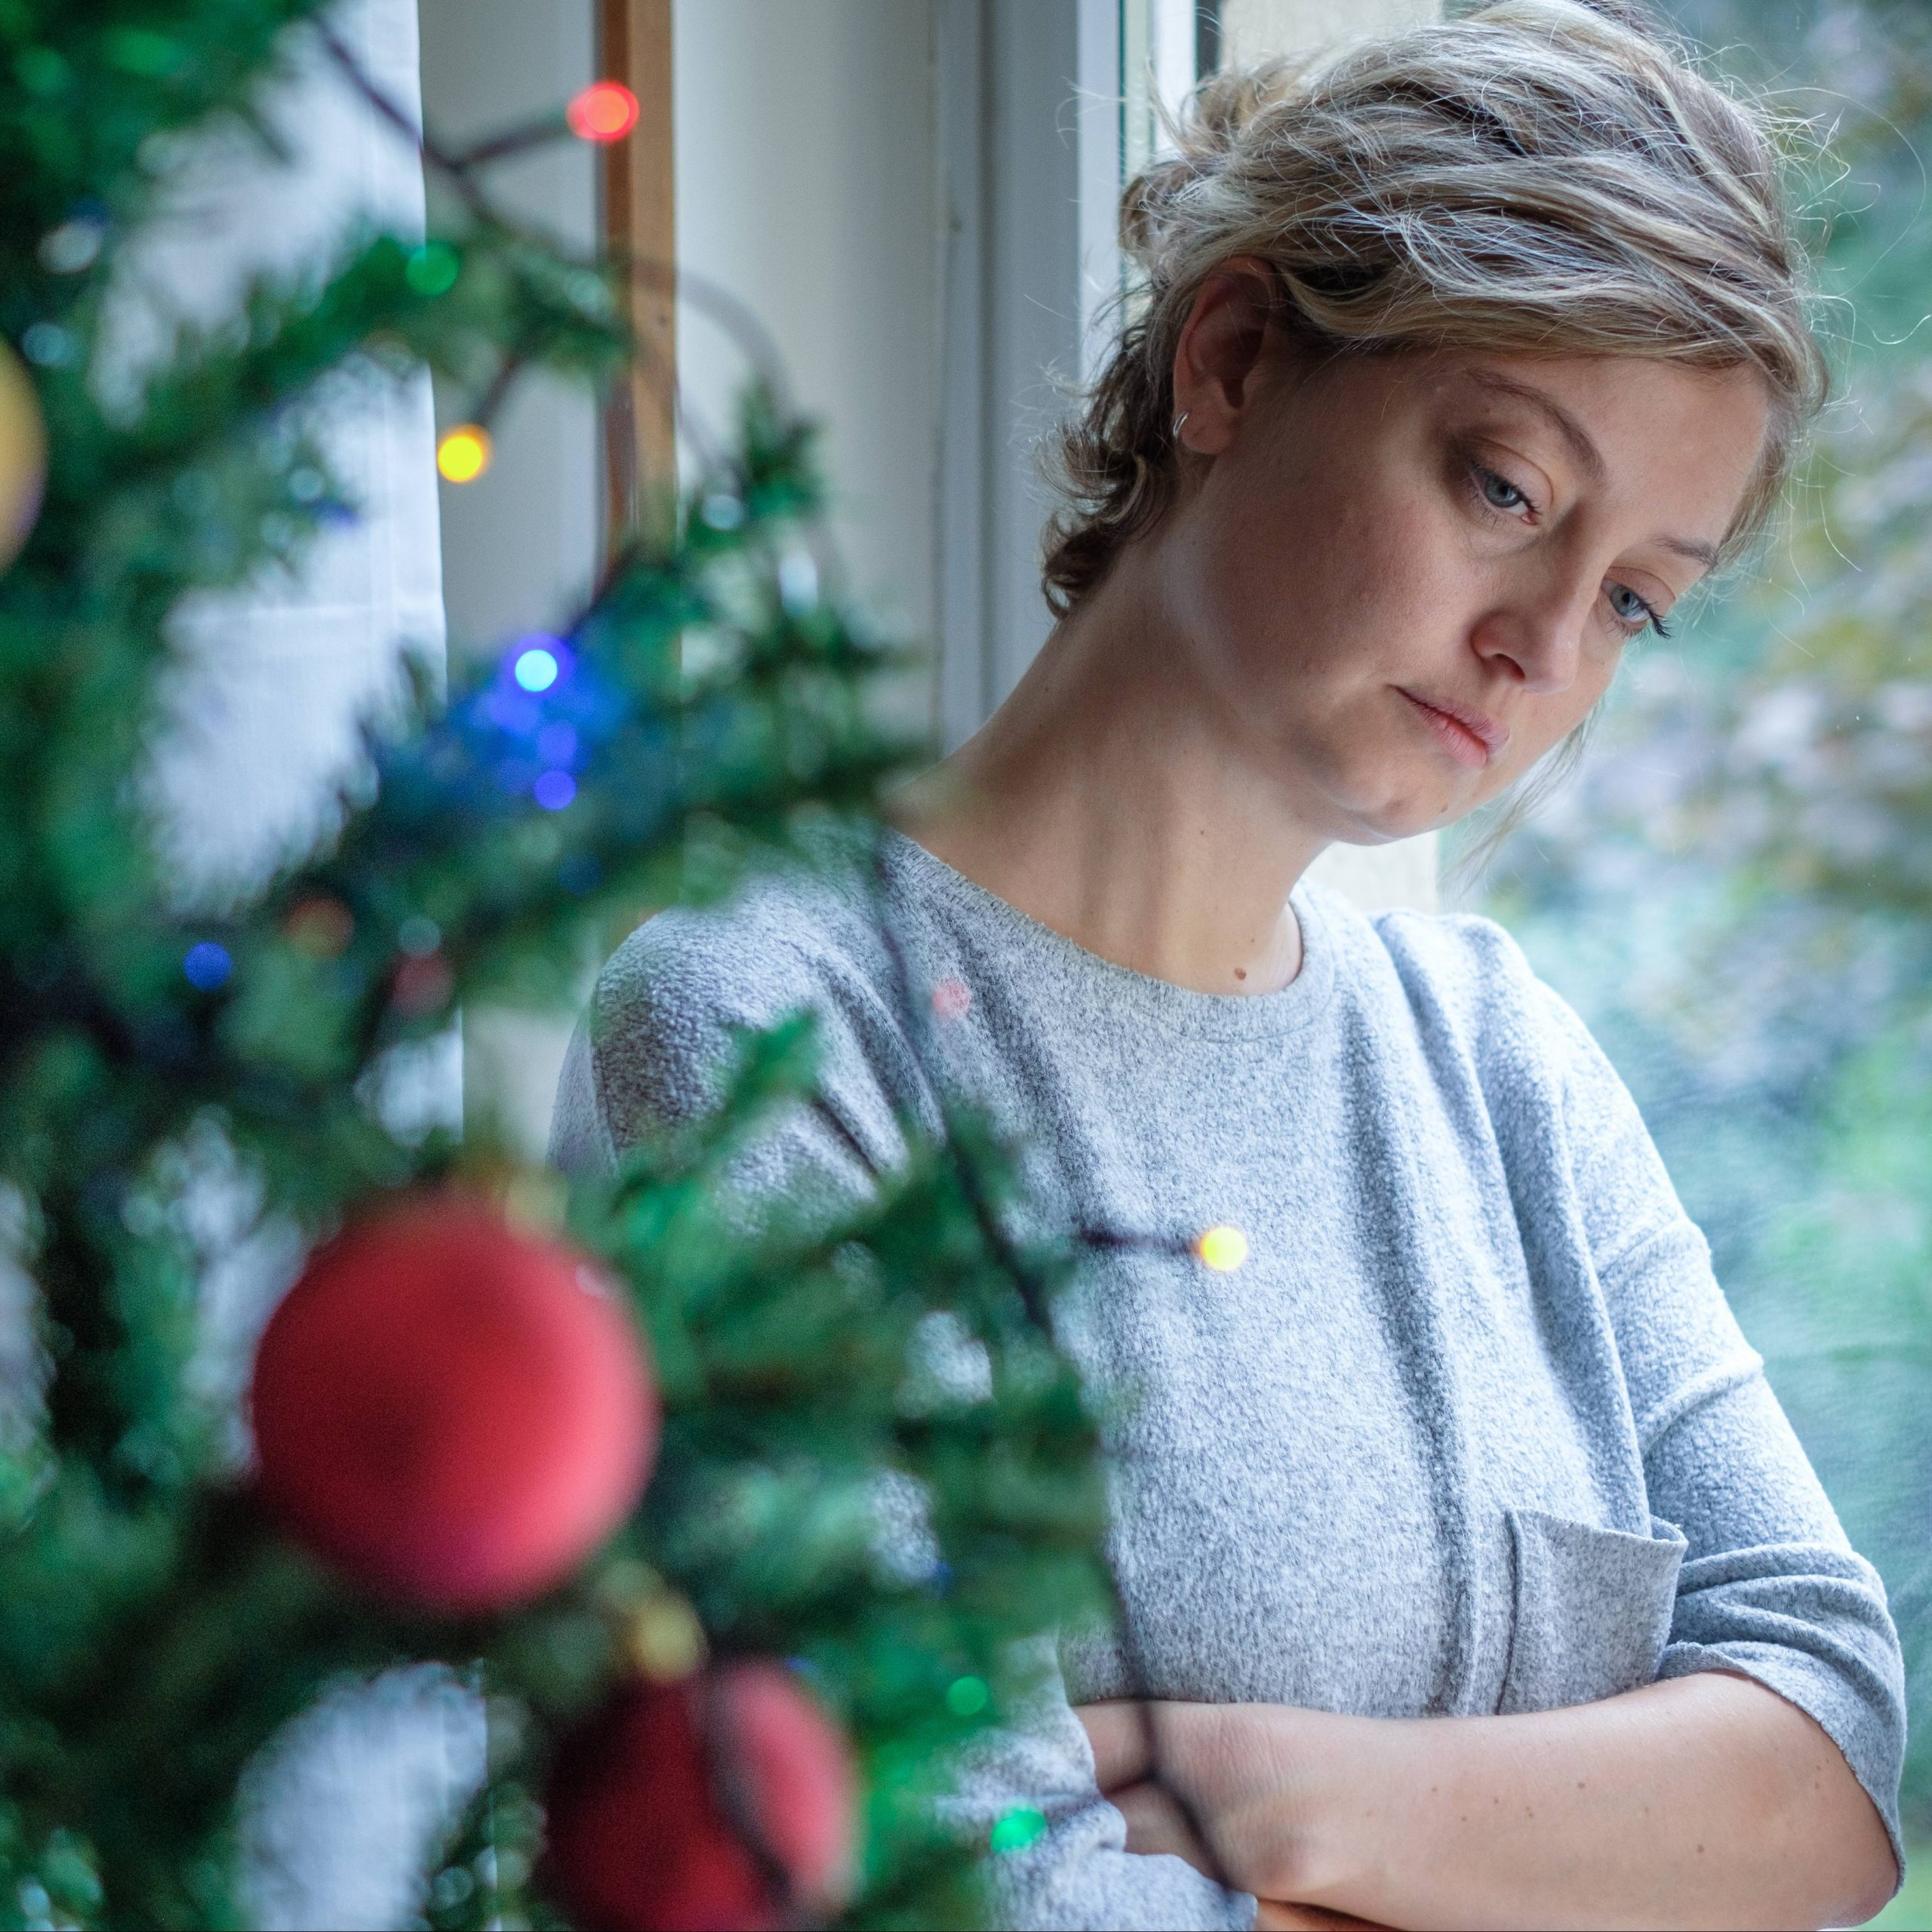 a young Caucasian woman looking sad and depressed, leaning against a glass door, with a decorated Christmas tree in the foreground